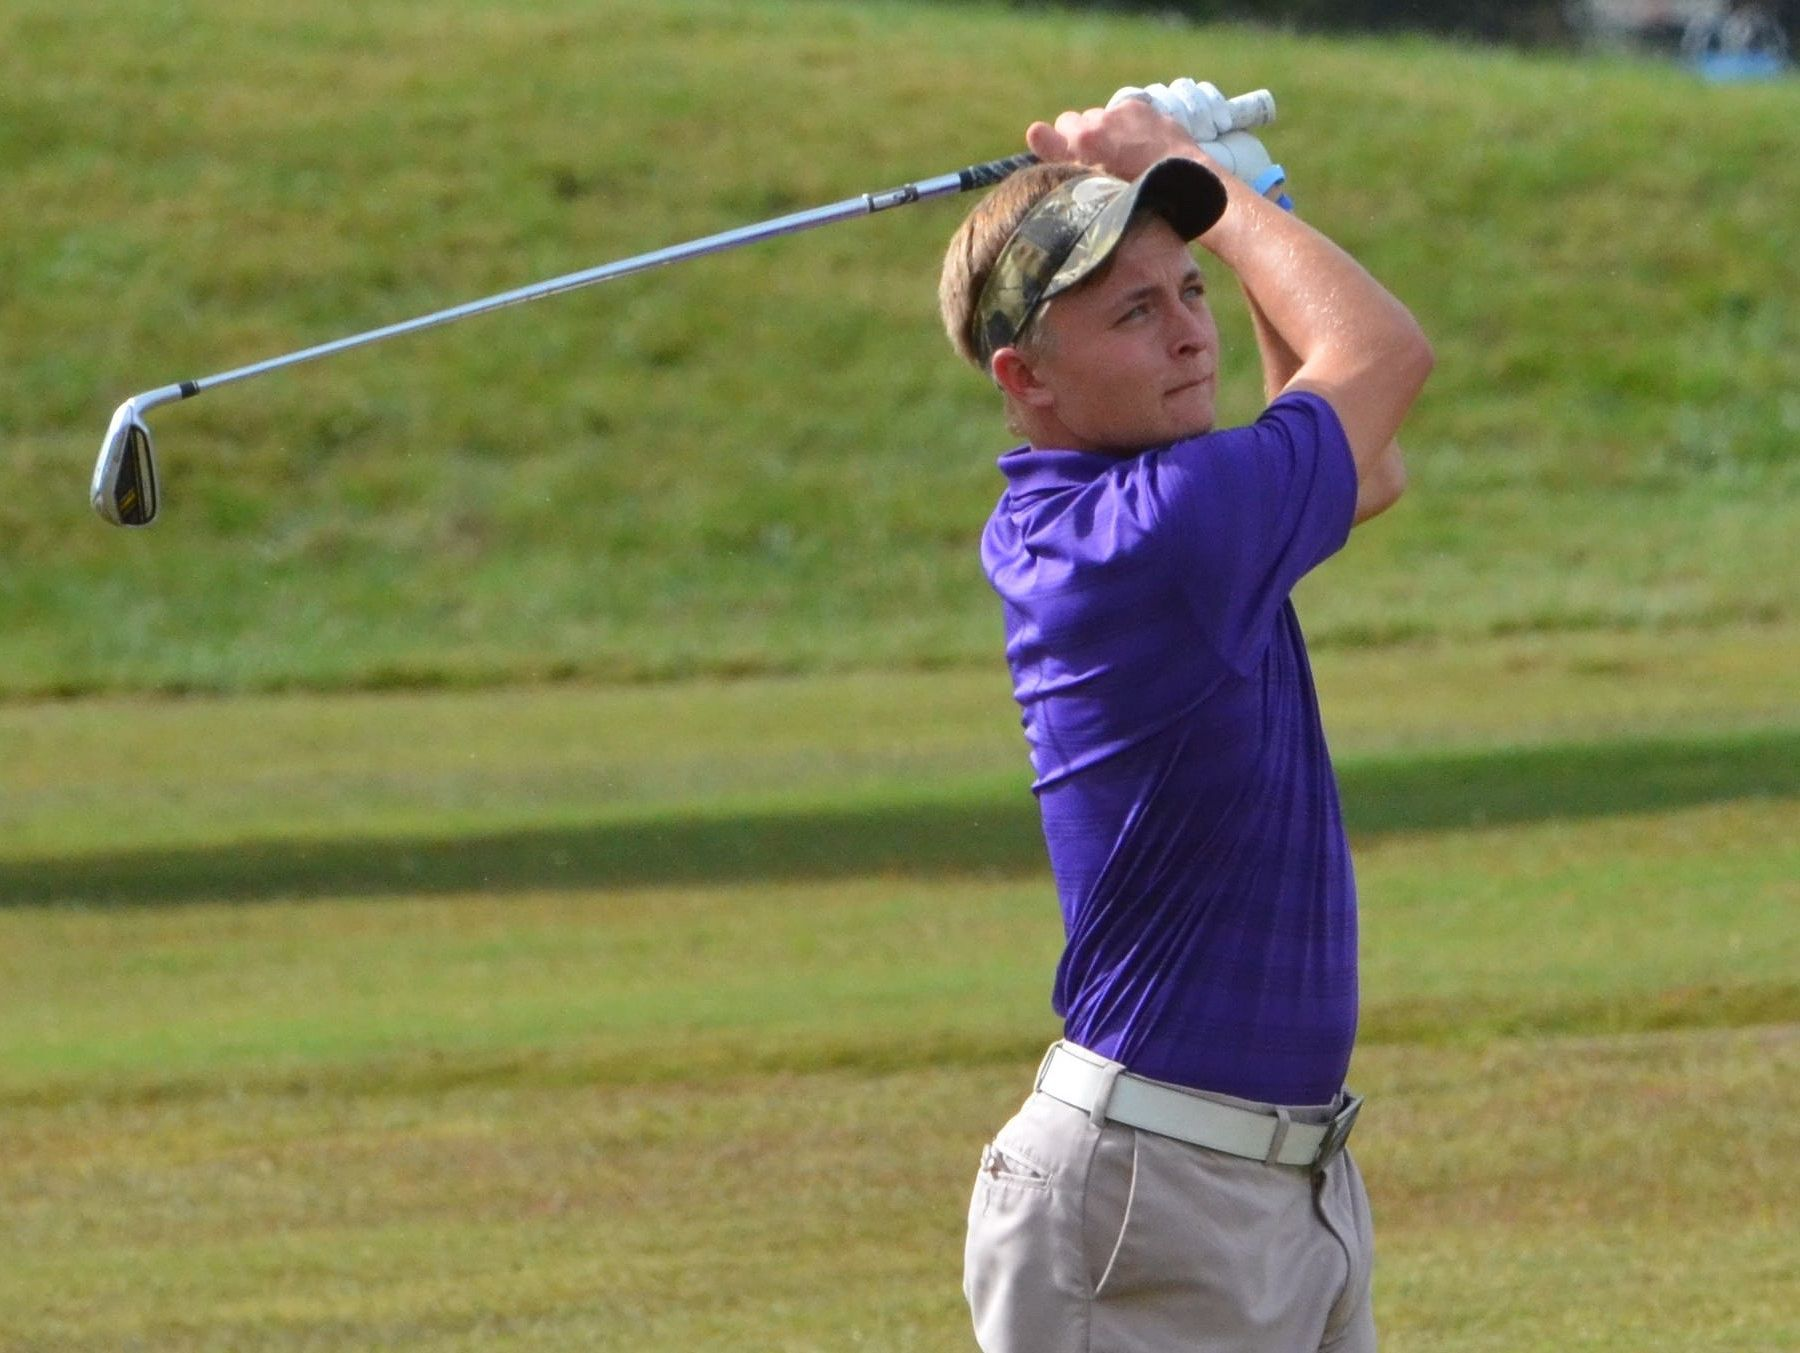 Clarksville High's Eric Jinnette drives a shot toward the green during the first round of the Class 3A State Golf Championships on Tuesday in Manchester, Tenn.